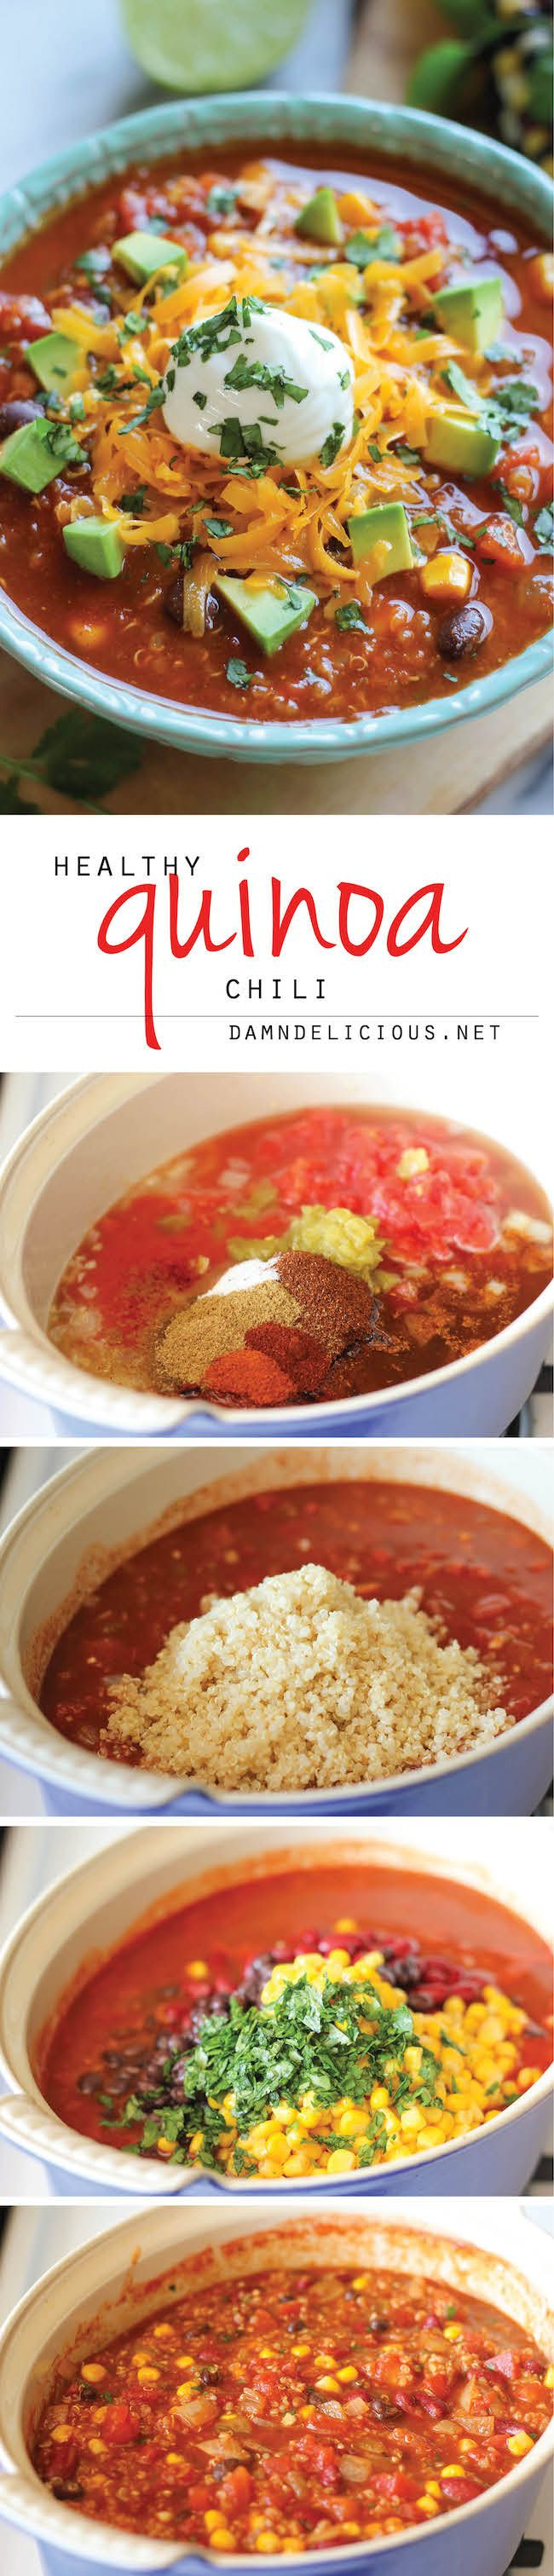 Quinoa Chili - This vegetarian, protein-packed chili is the perfect bowl of comfort food that you can eat guilt-free!